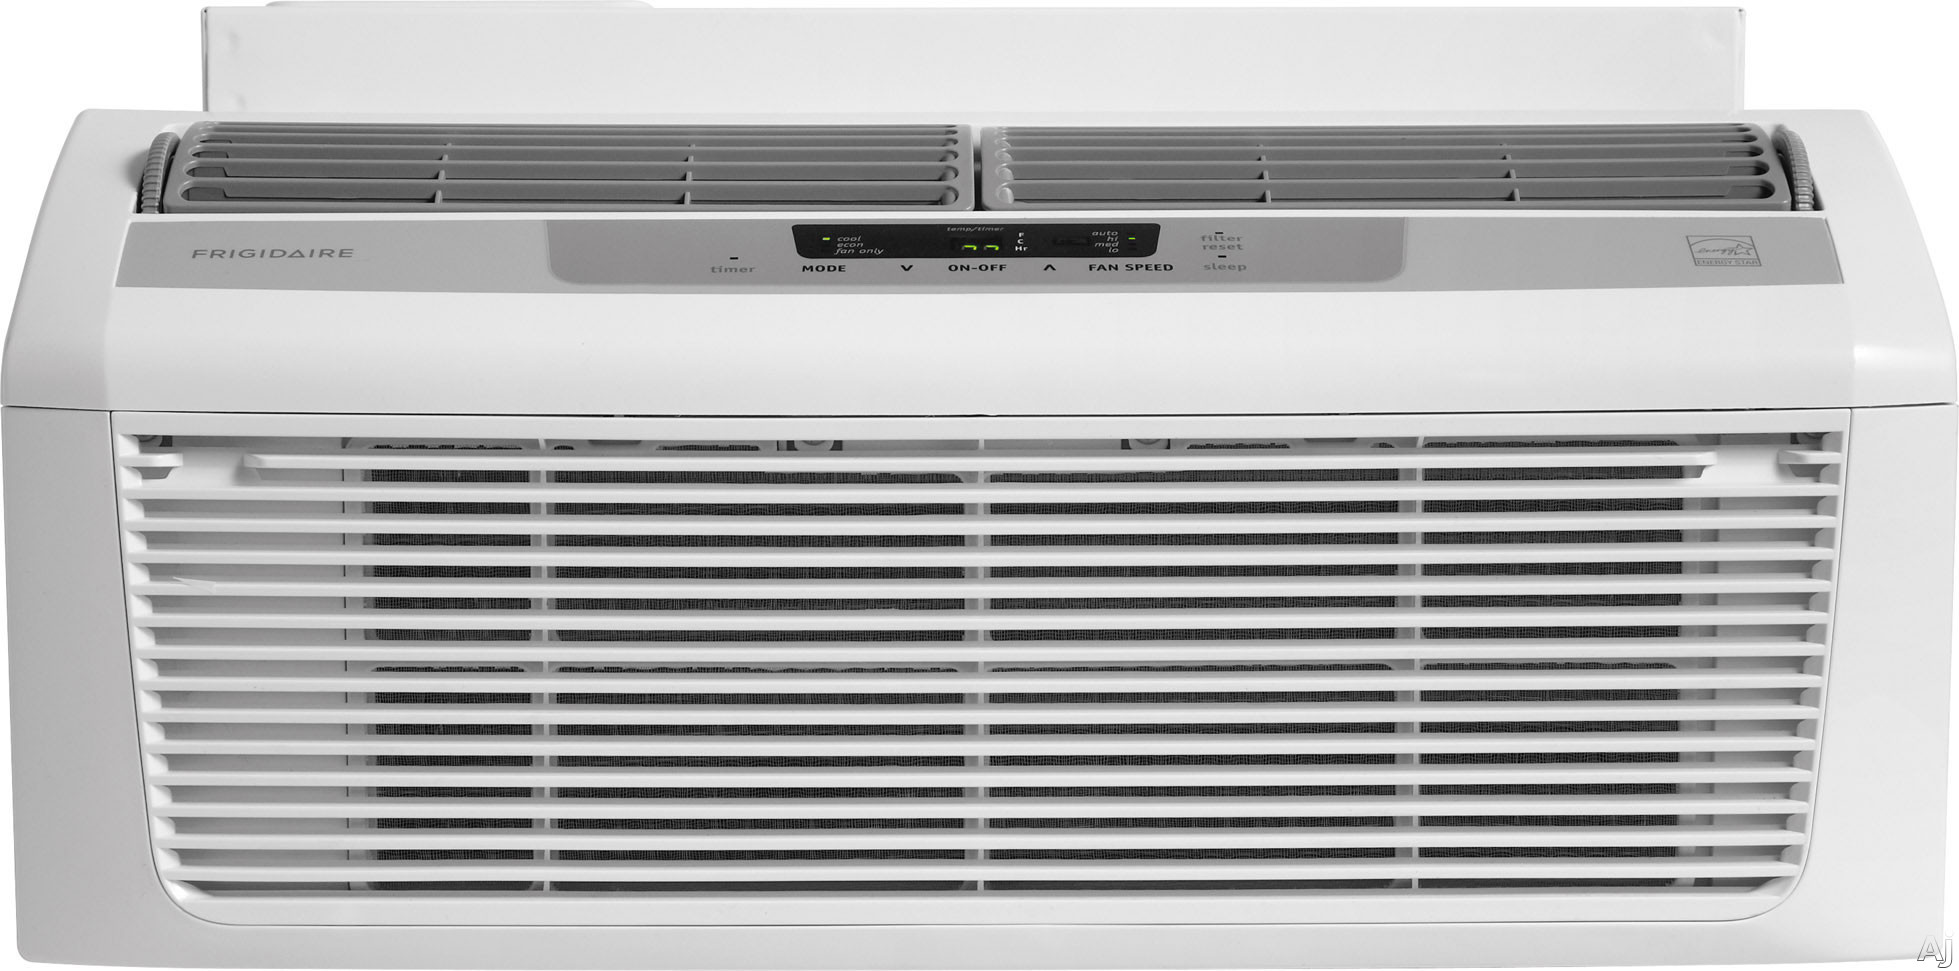 Frigidaire FFRL0633Q1 6 000 BTU Low Profile Window Air Conditioner with 11.2 EER R 410A Refrigerant 1.3 Pts Hr Dehumidification 250 sq. ft. Cooling Area Energy Saver and Remote Control